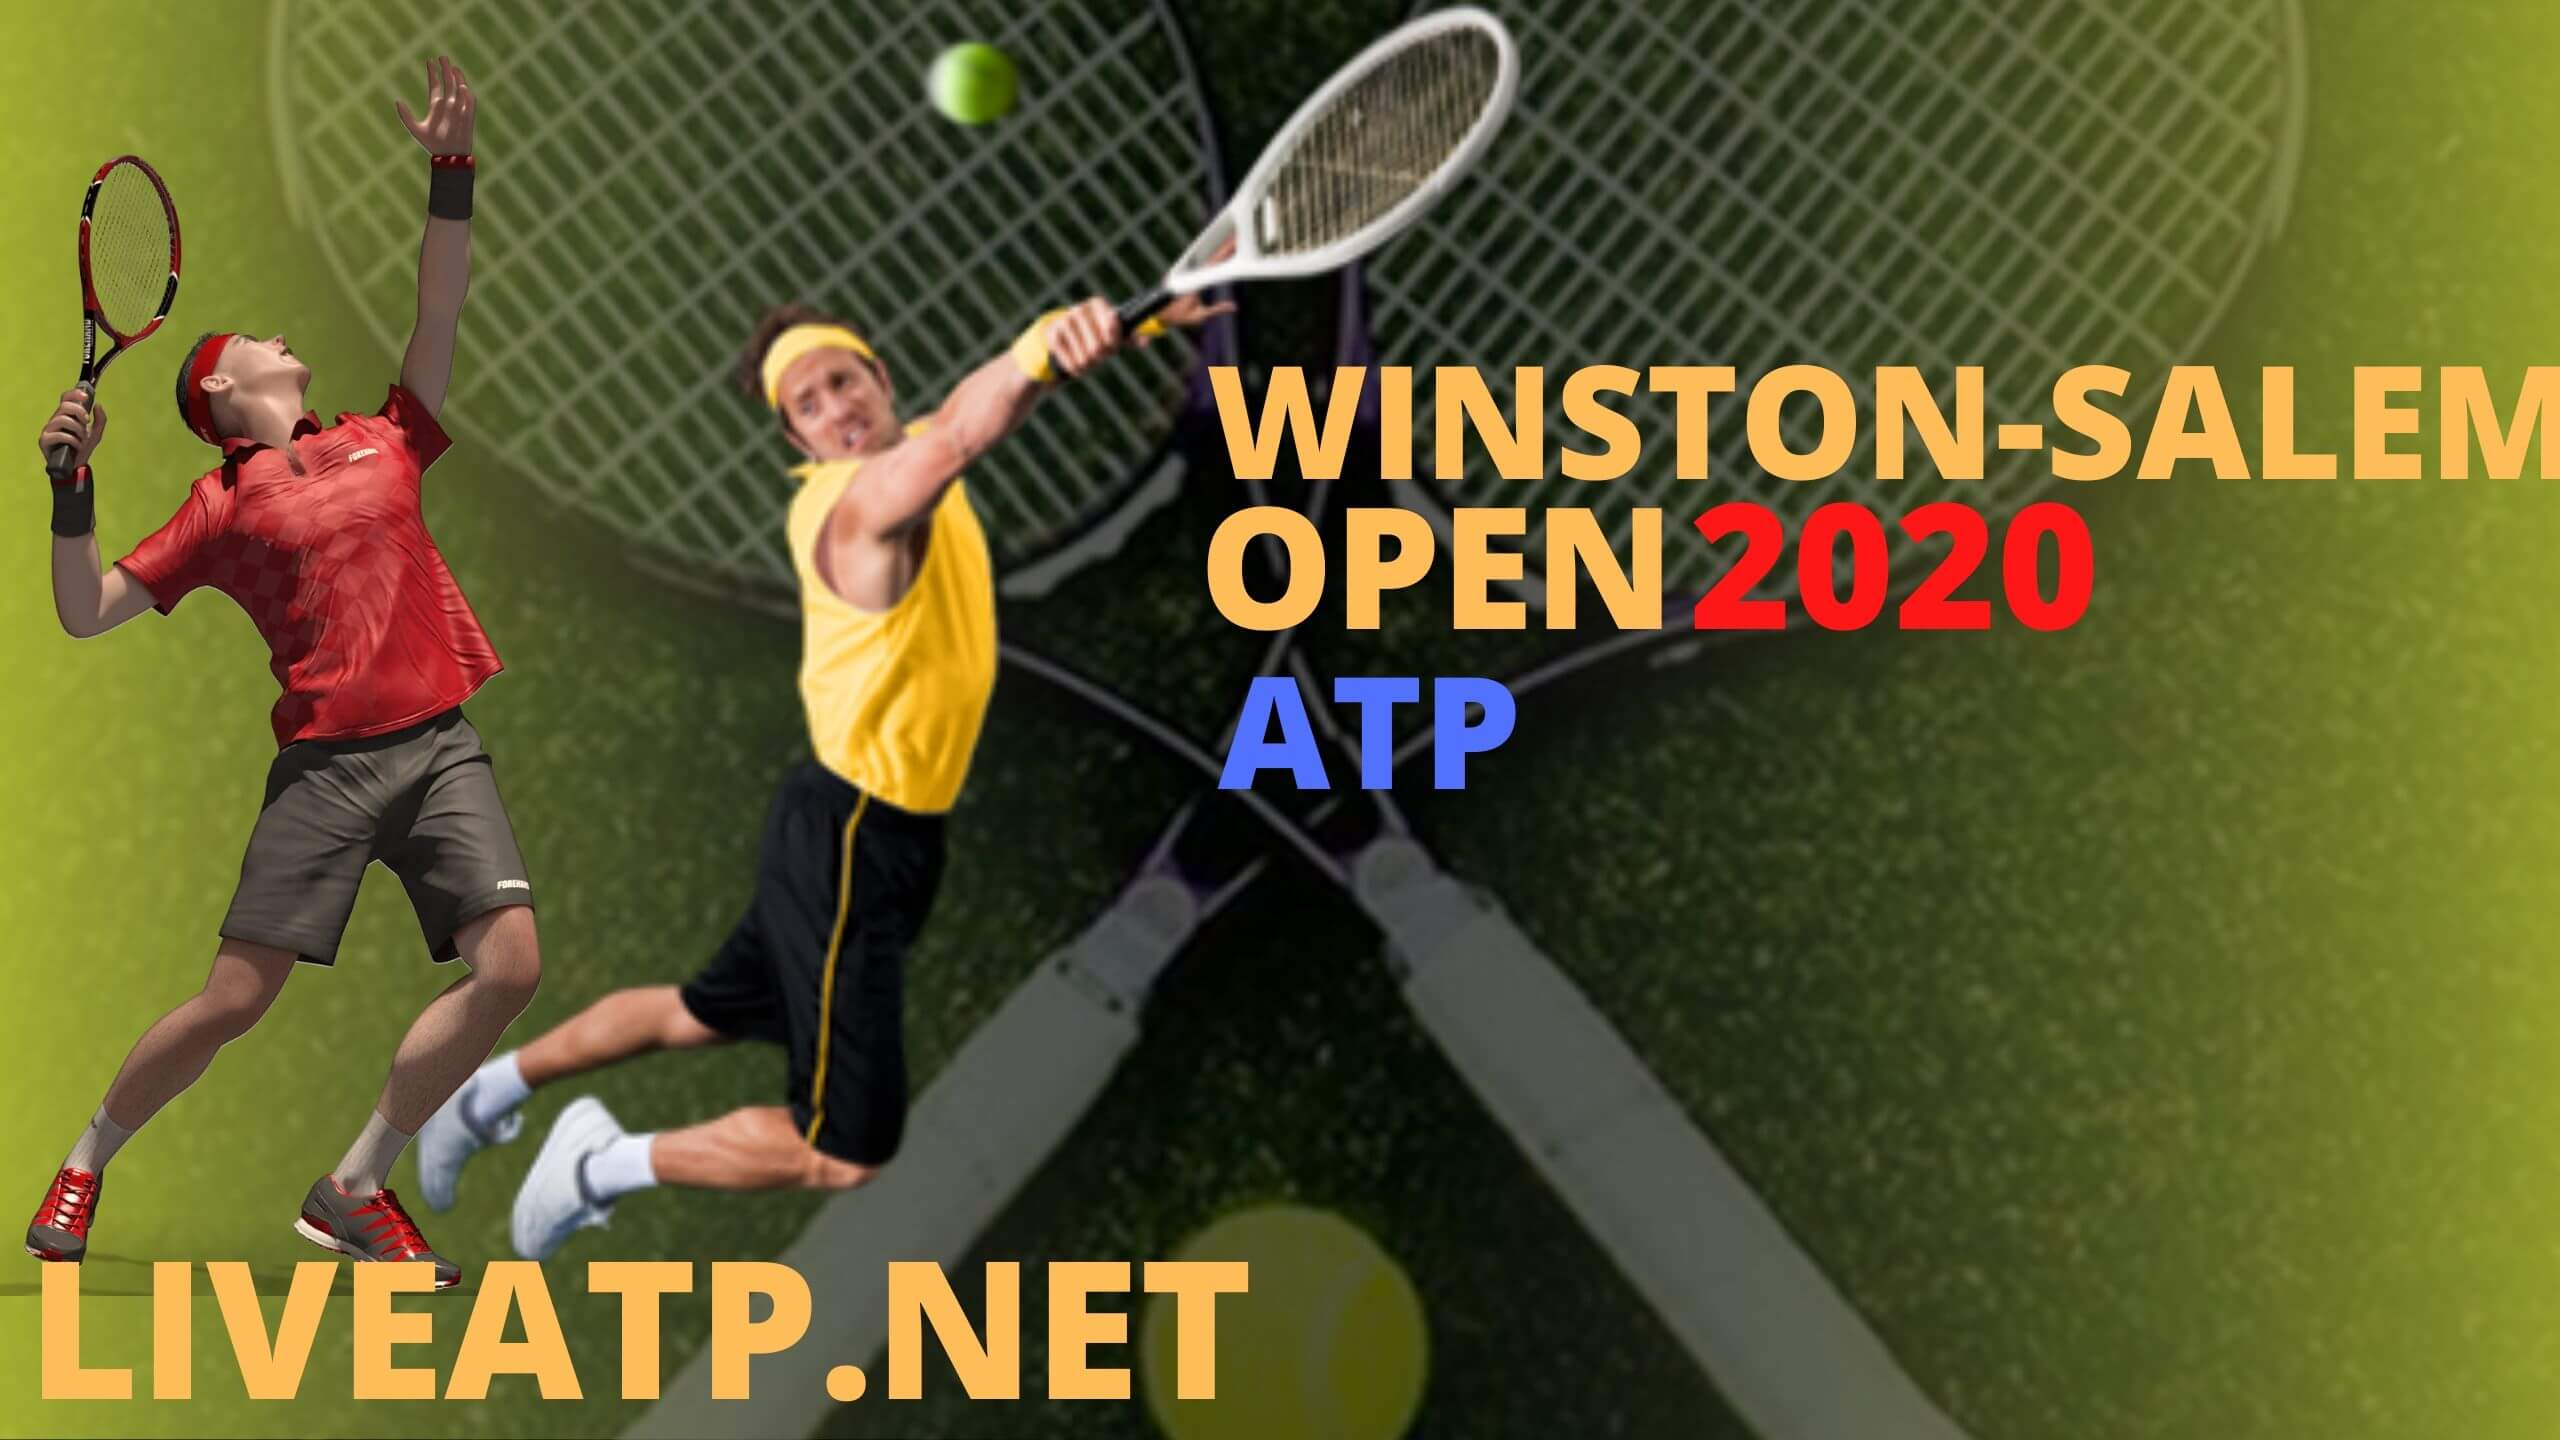 Winston Salem Open Live Stream 2020 | Semi Final